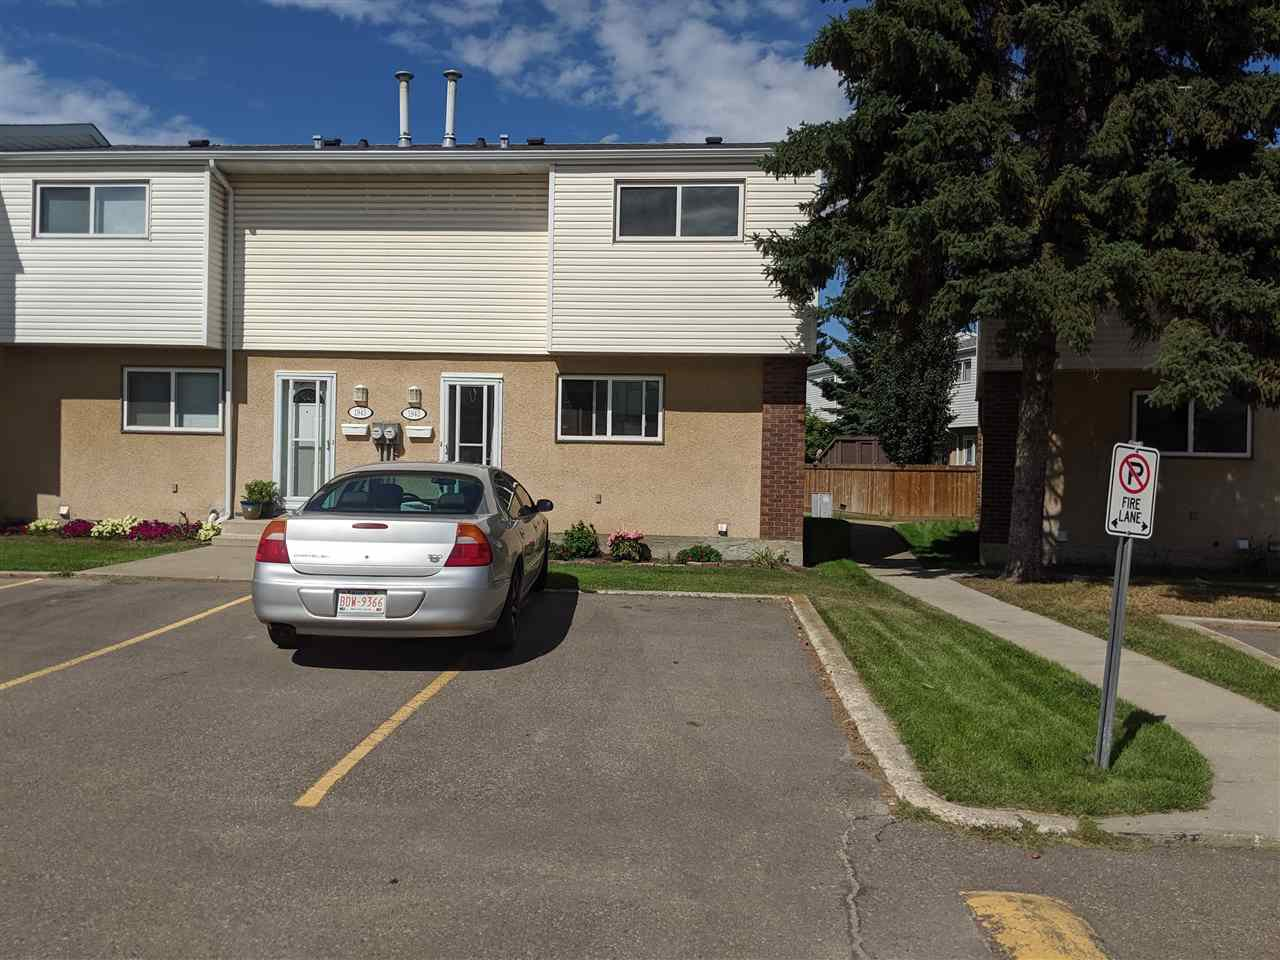 Main Photo: 1943 73 Street in Edmonton: Zone 29 Townhouse for sale : MLS®# E4191902